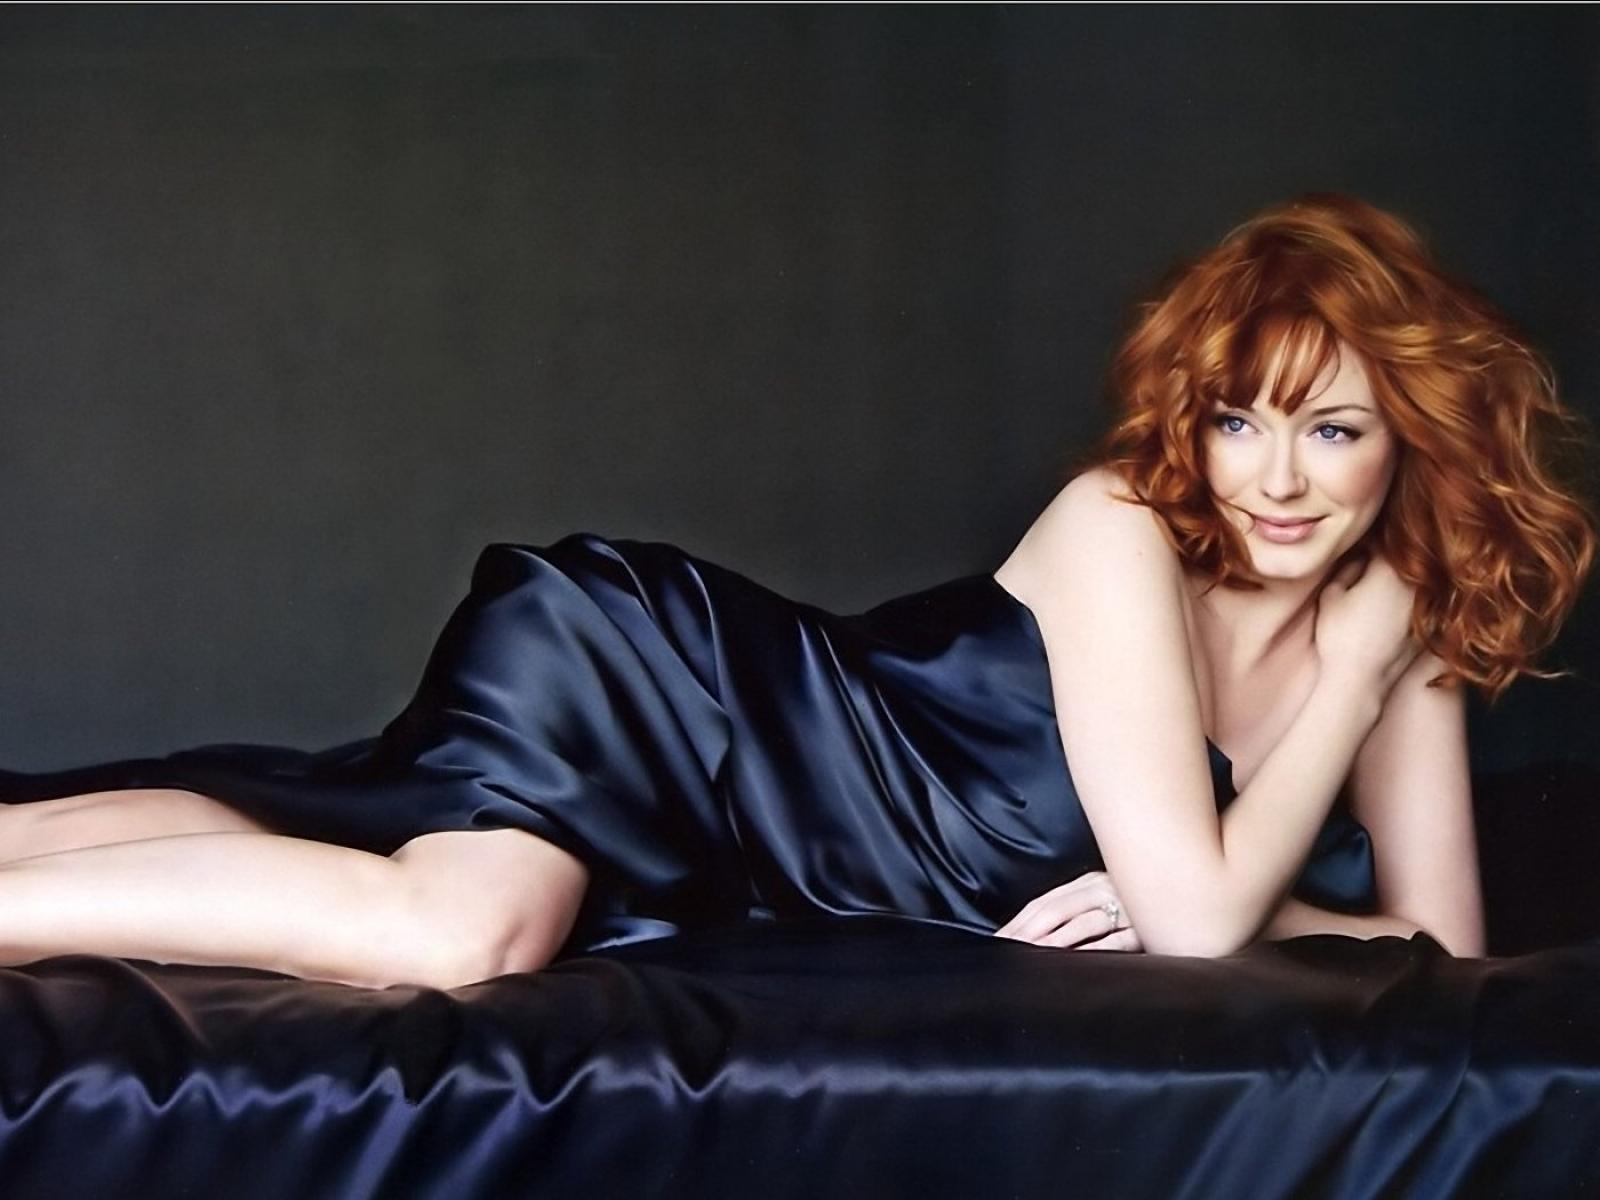 christina-hendricks-leaked